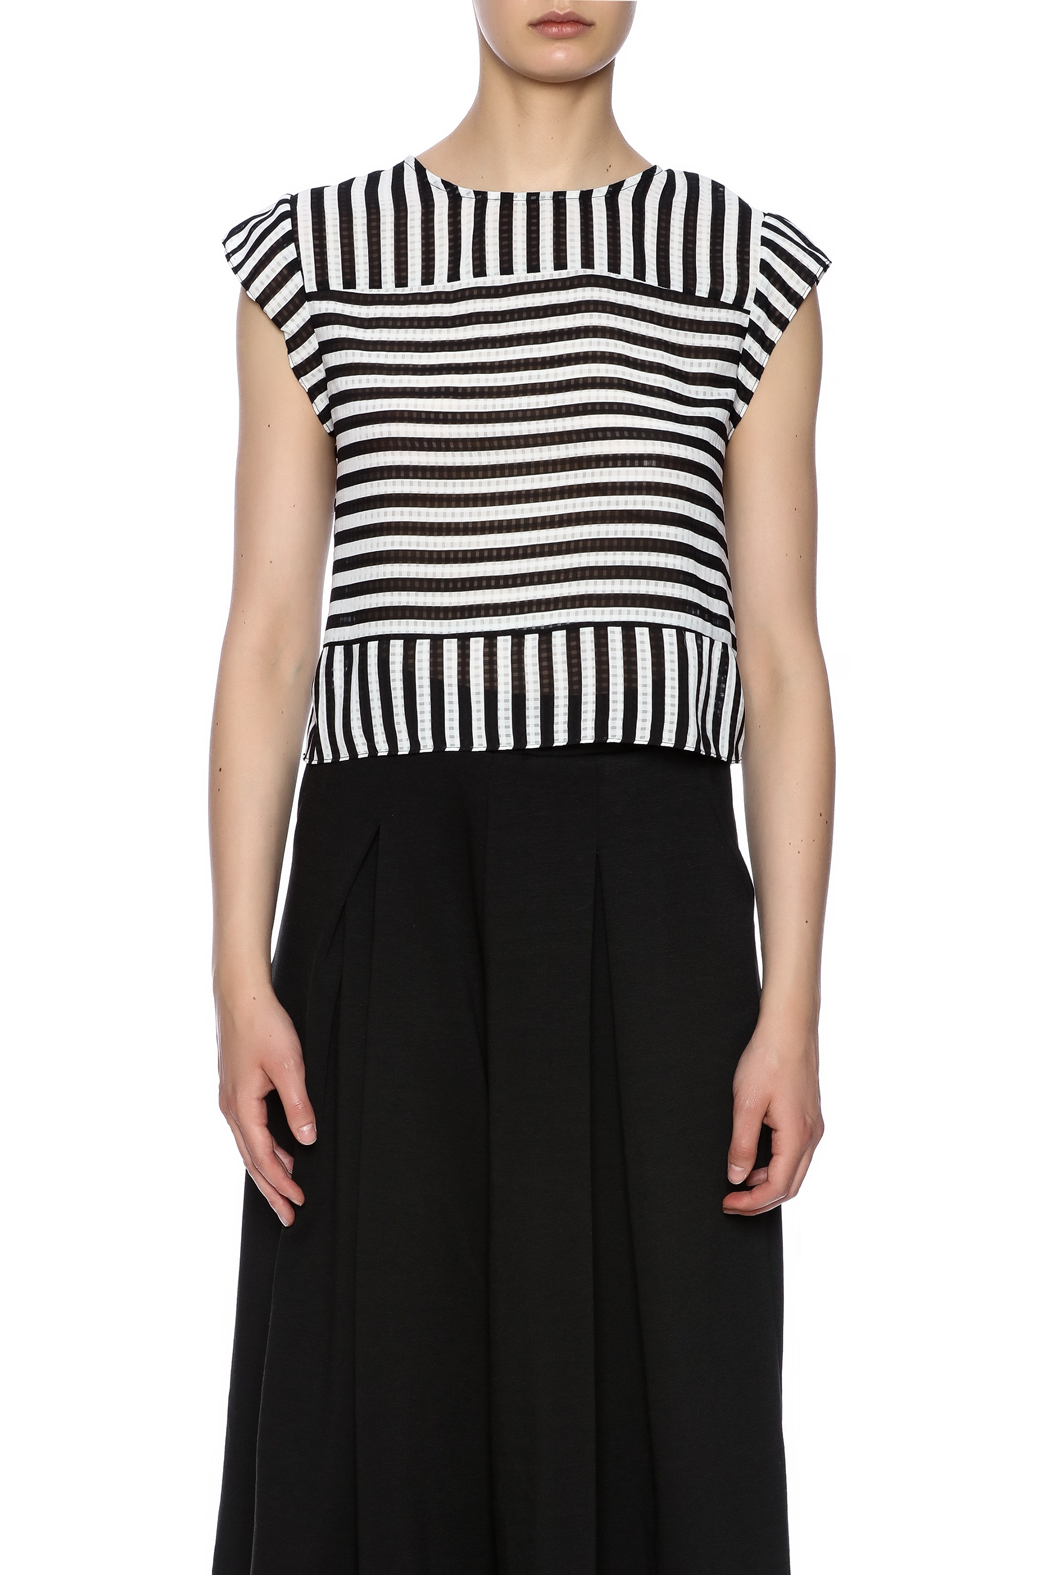 Lucy Paris Stripe Short Sleeve - Side Cropped Image